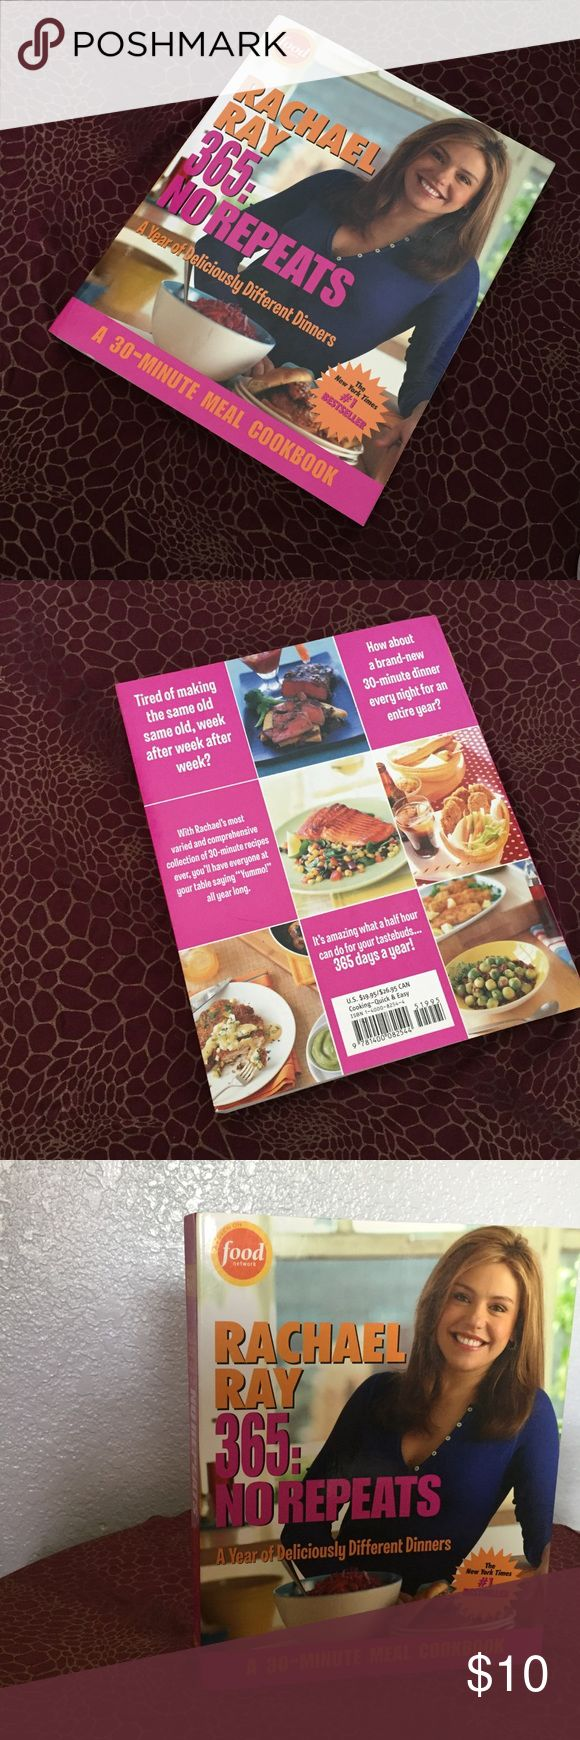 OBO // Rachel Ray cook book 🌶 Brand new cook book! Simple recipes to be able to cook everyday! Other